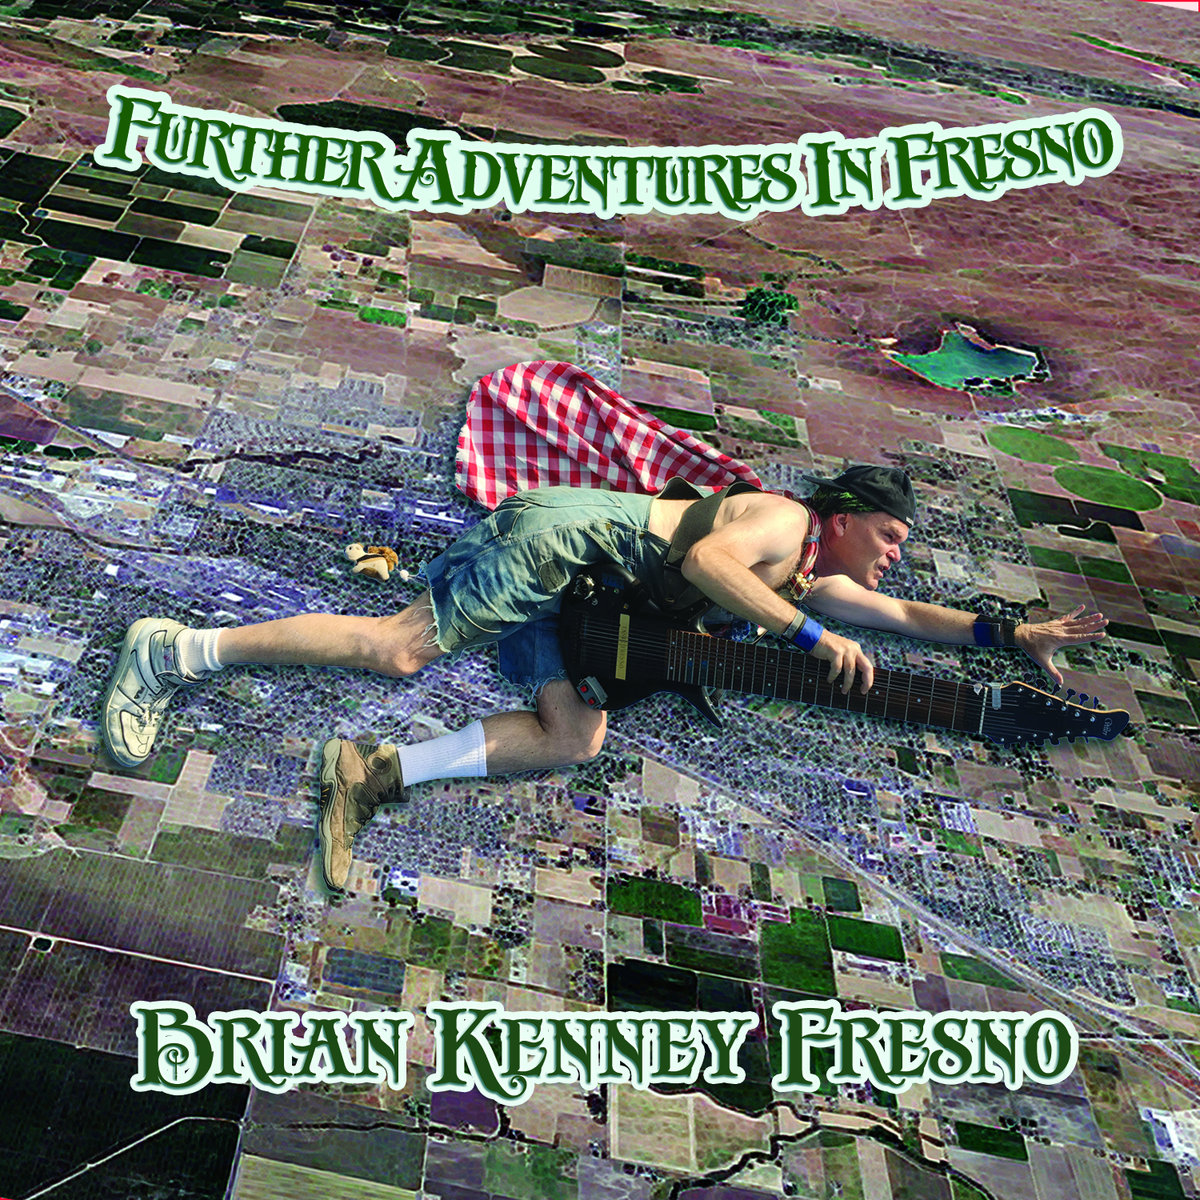 Further Adventures in Fresno Cover art